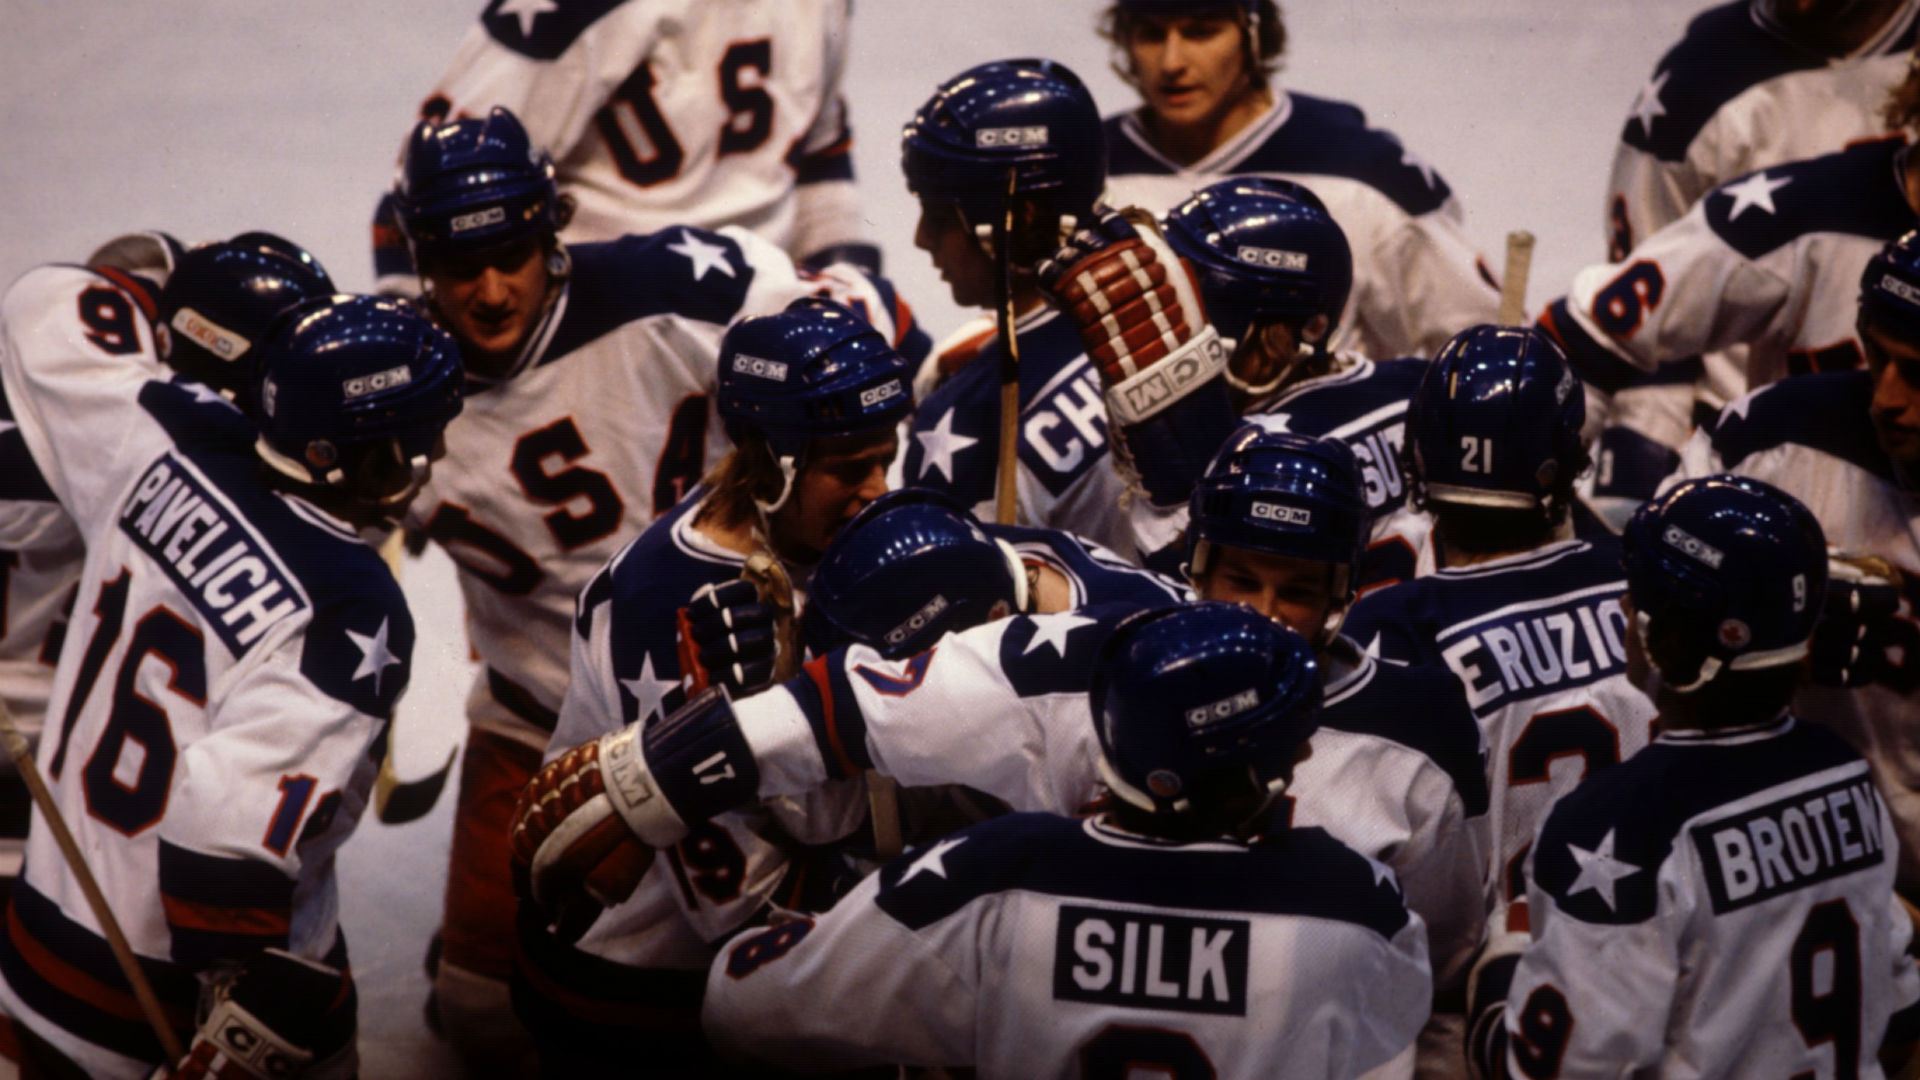 Mark-pavelich-miracle-on-ice-team-092119-usnews-getty-ftr_crw12beqqe9k1agkxylcqqg7t